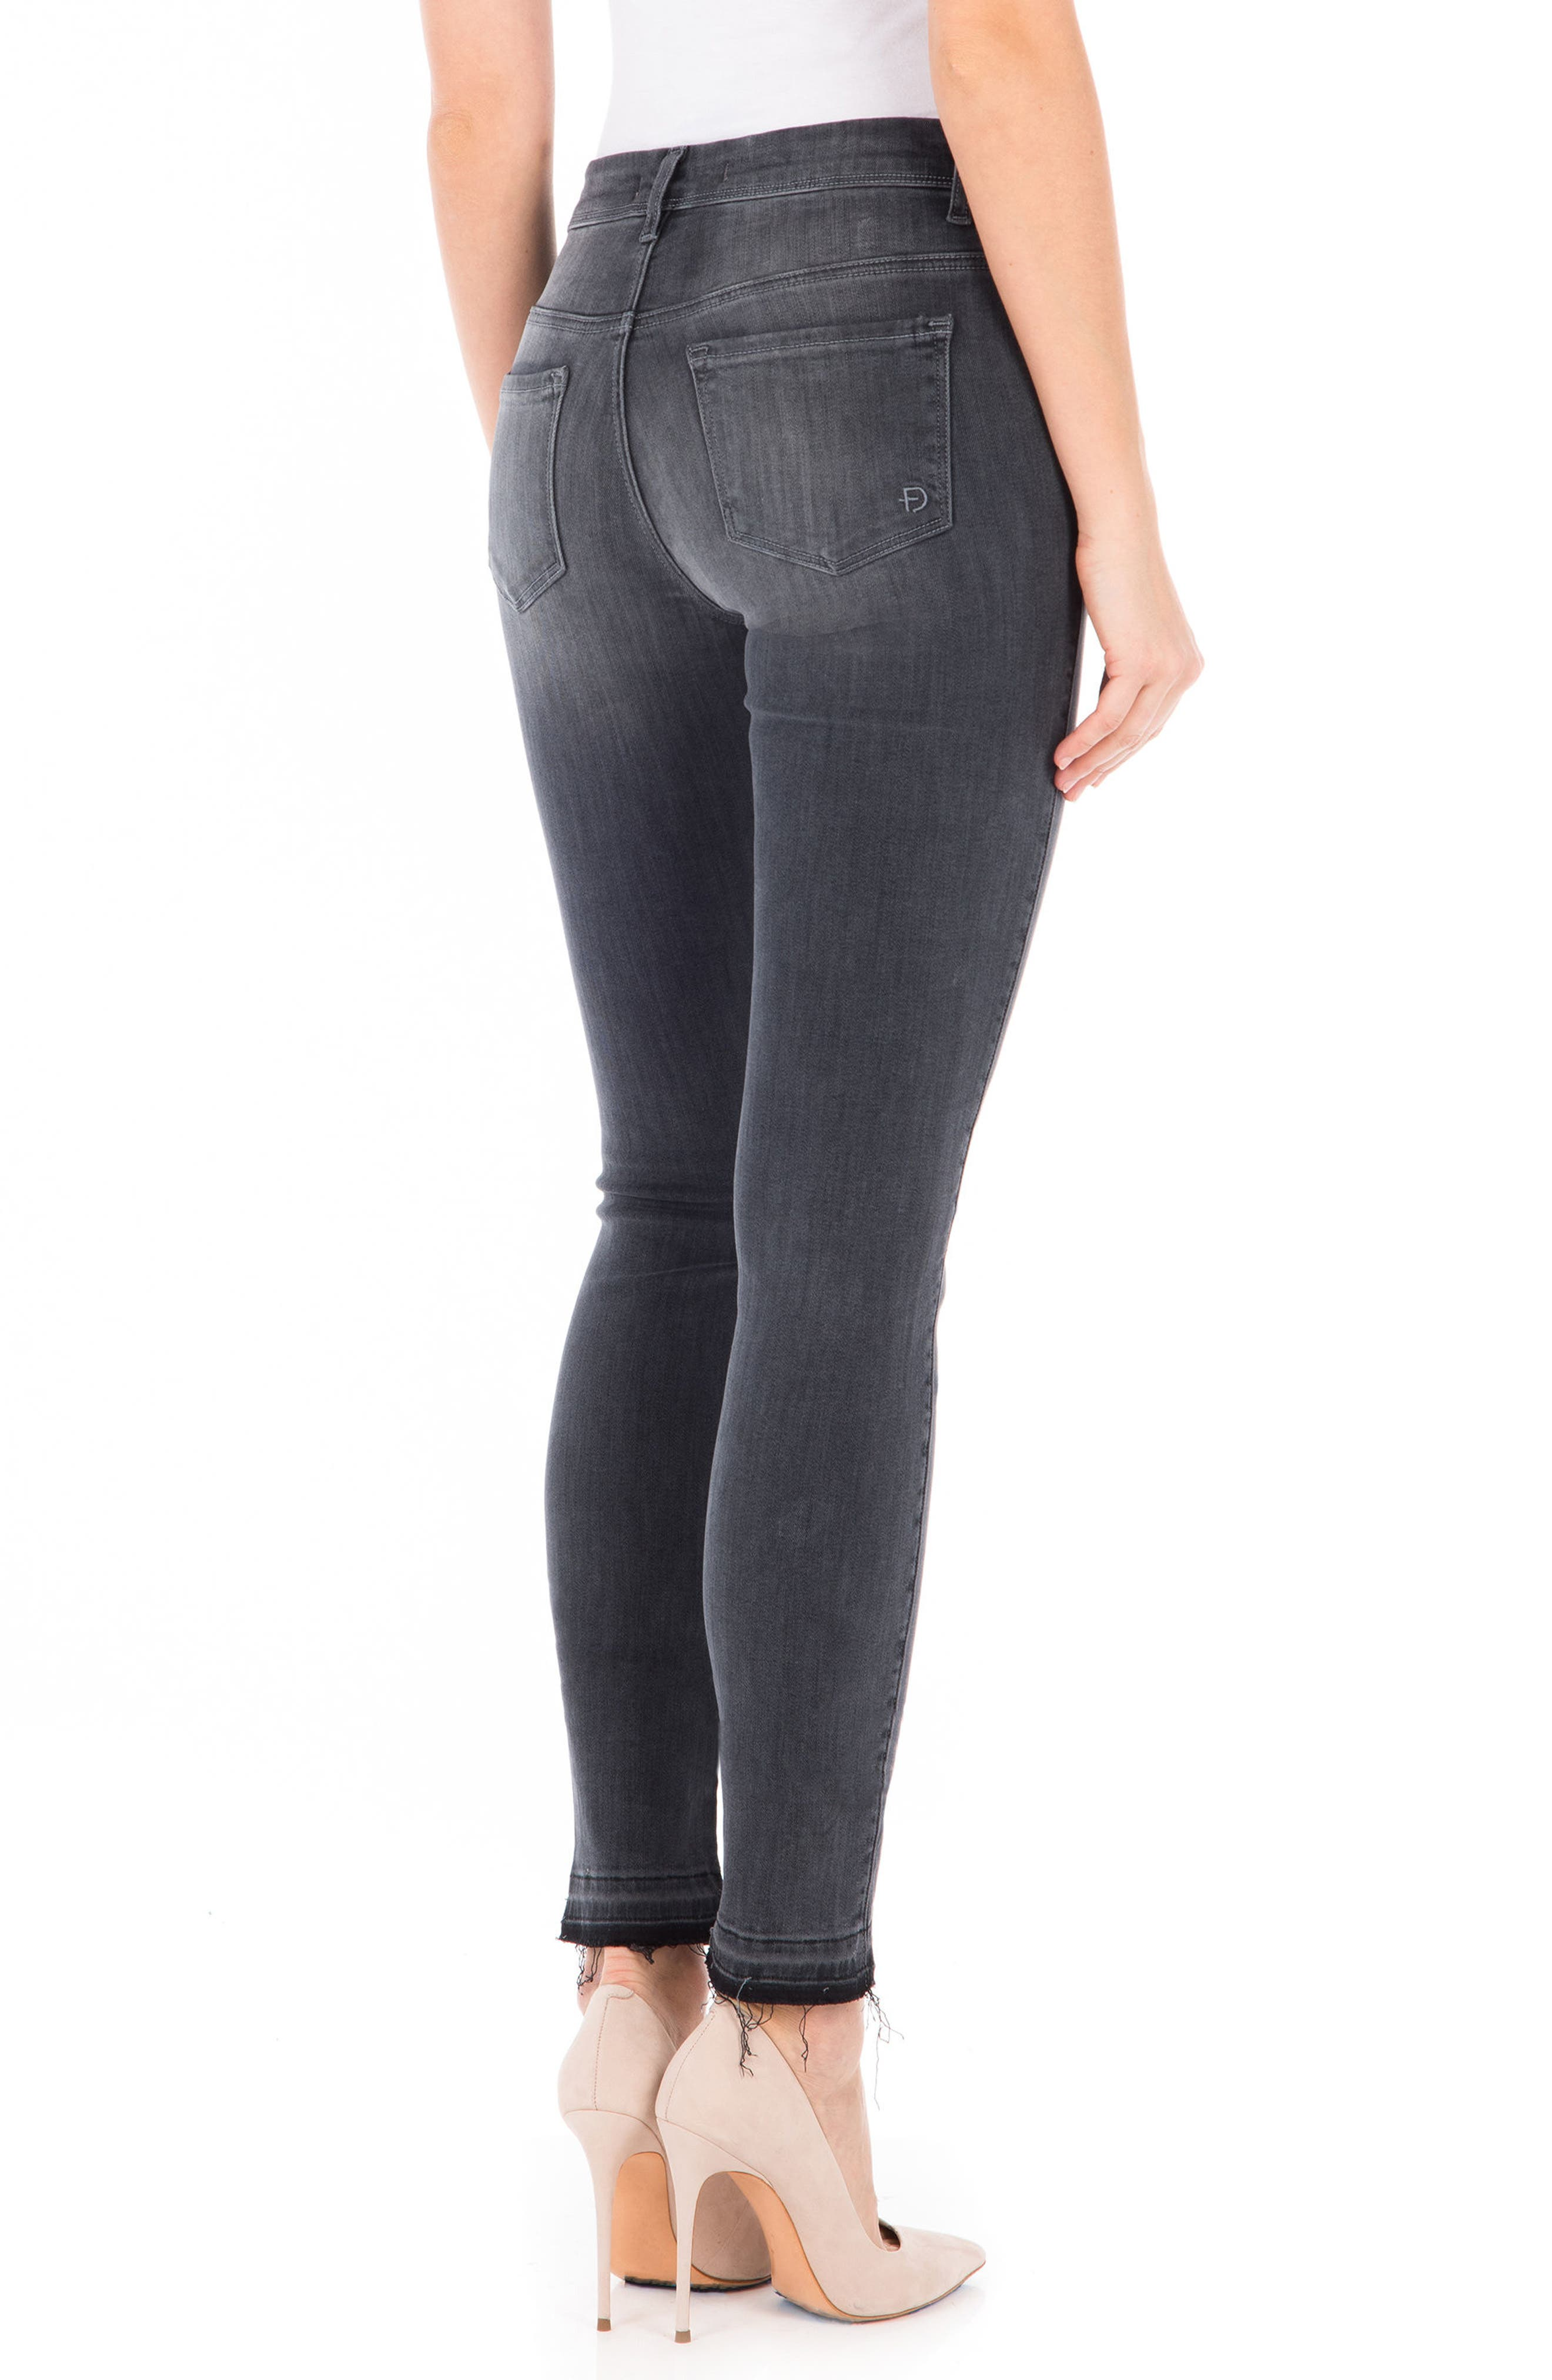 Gwen High Waist Skinny Jeans,                             Alternate thumbnail 2, color,                             001